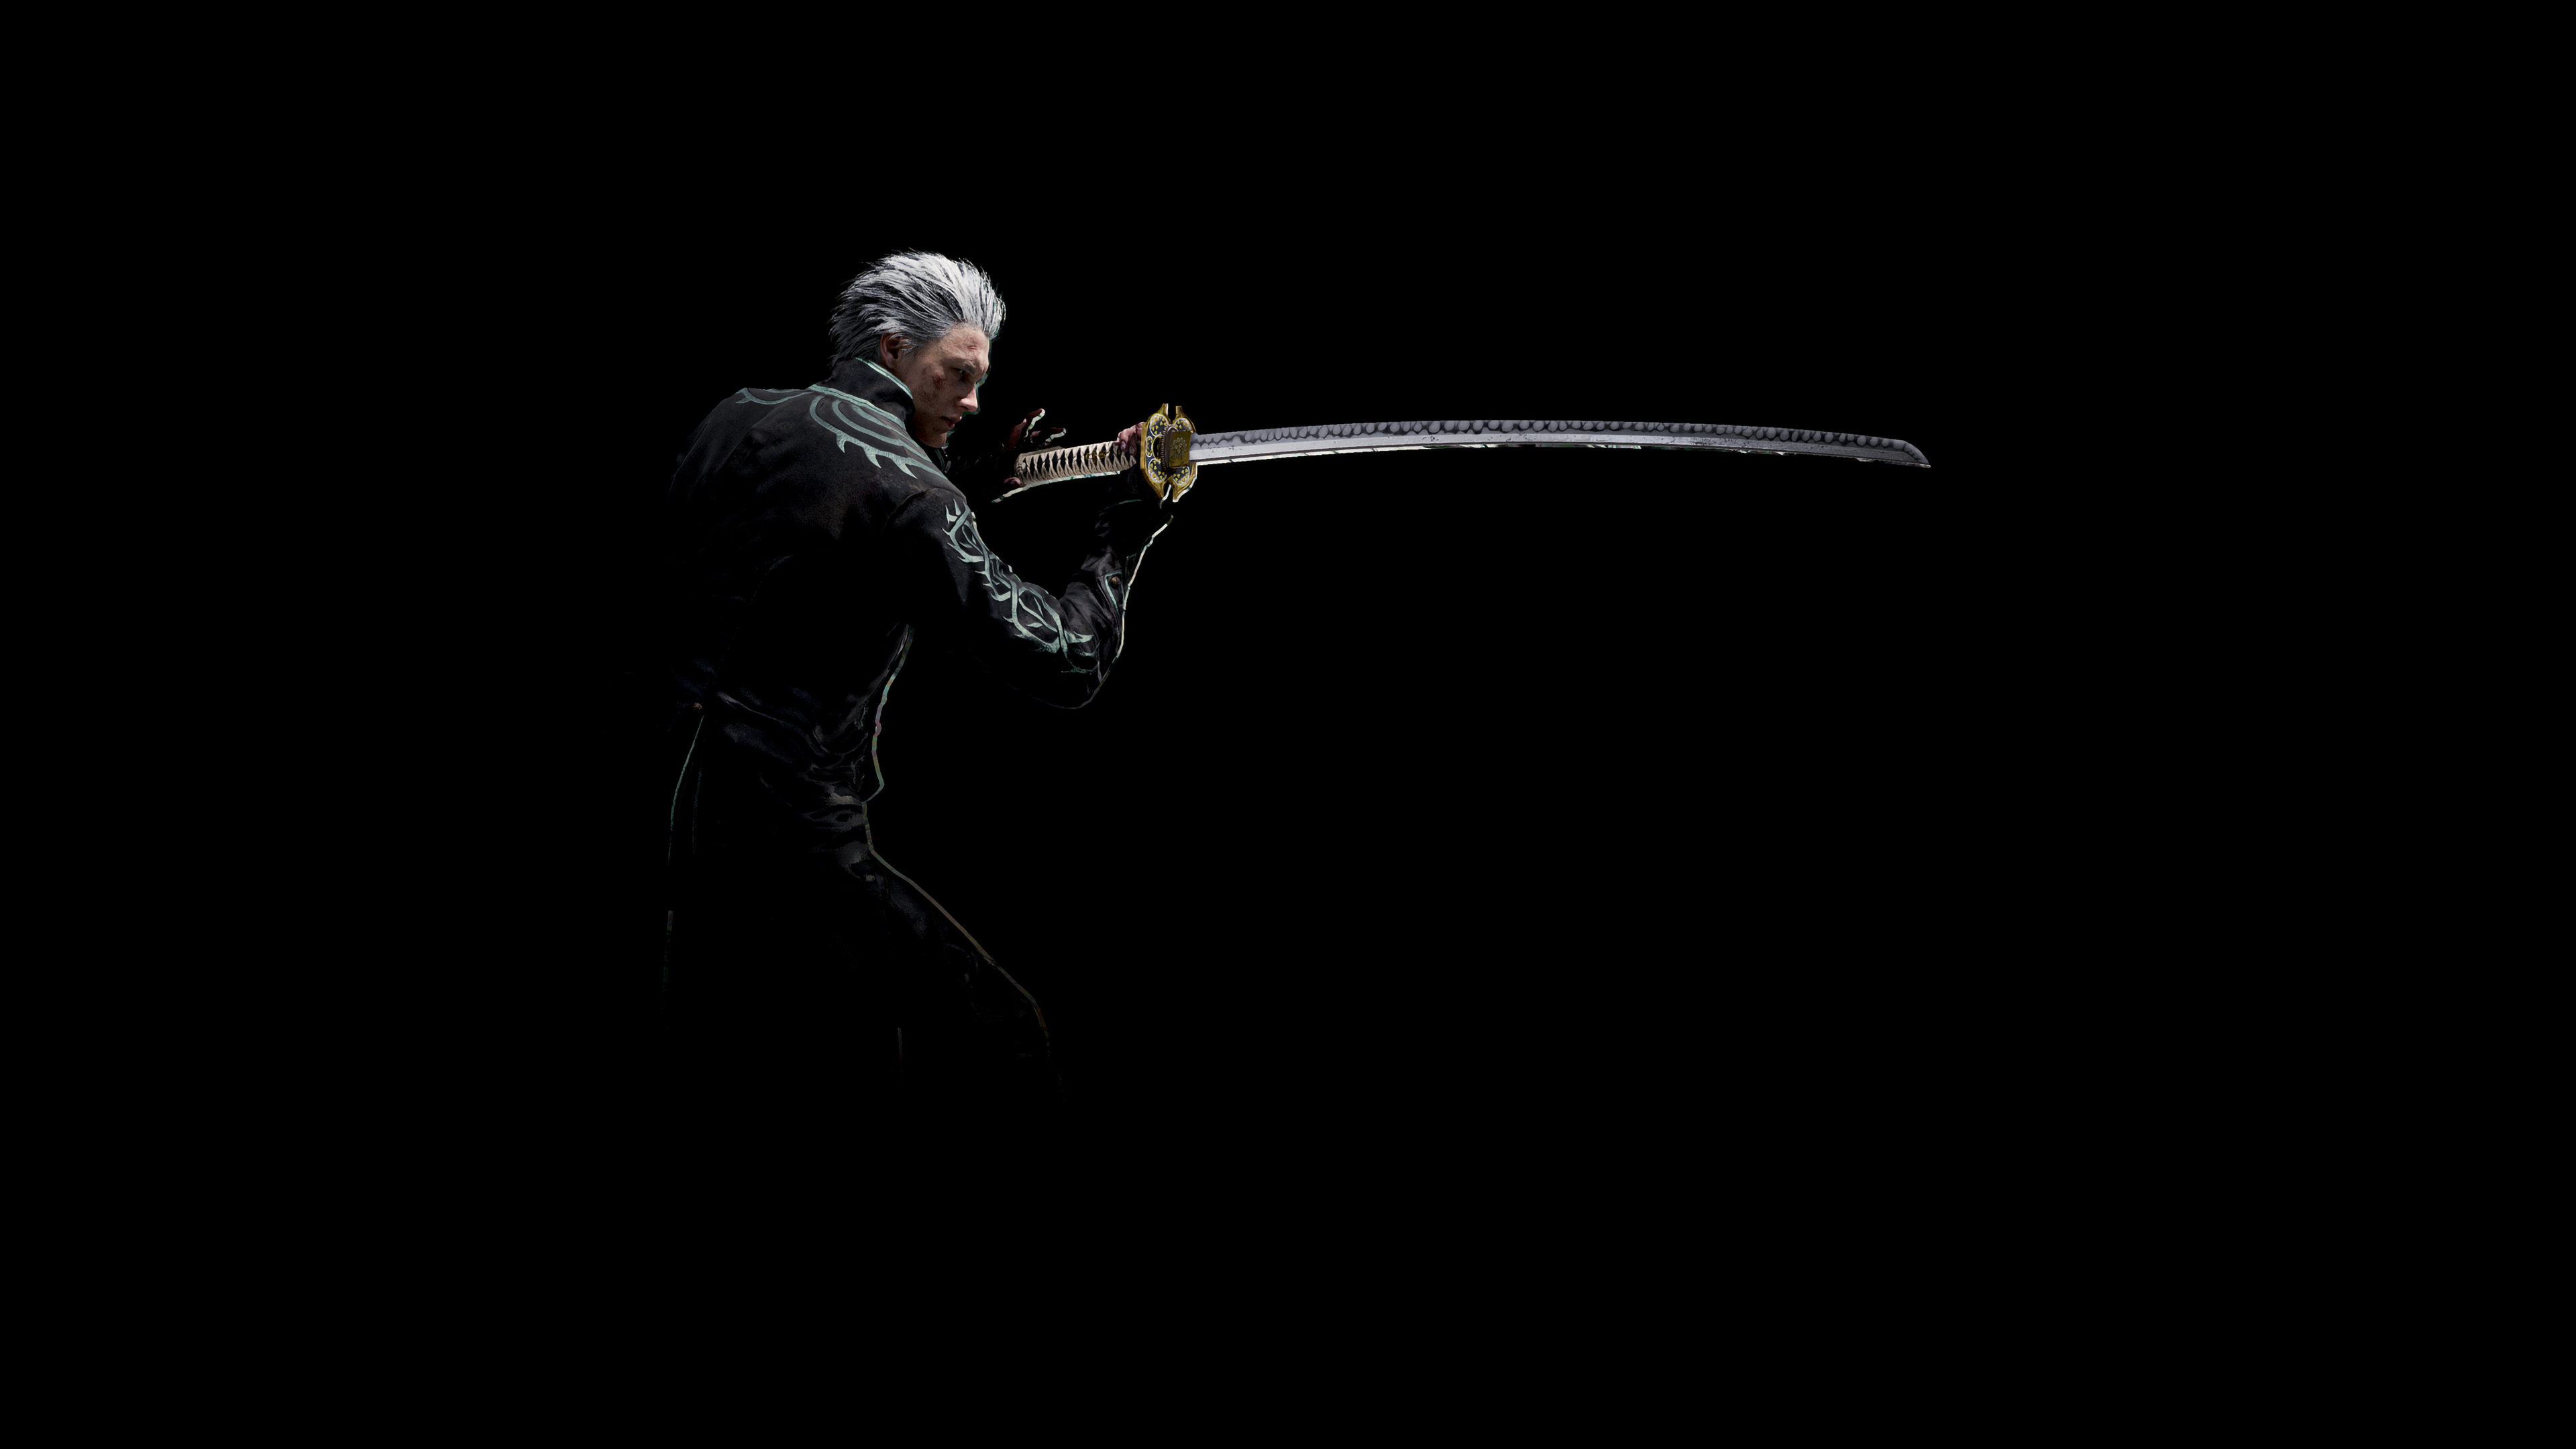 4k vergil devil may cry 5 wallpaper hd games 4k wallpapers images photos and background 4k vergil devil may cry 5 wallpaper hd